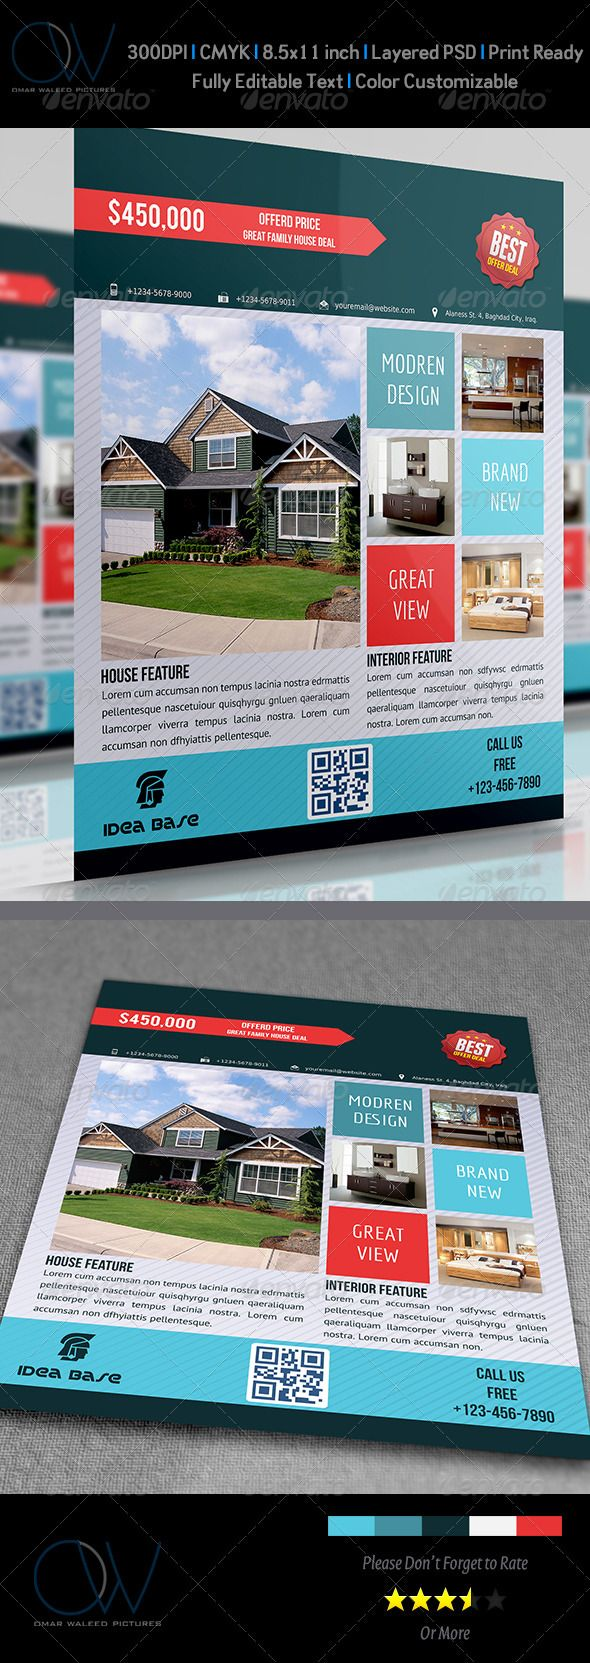 best images about real estate flyers real estate real estate flyer vol 2